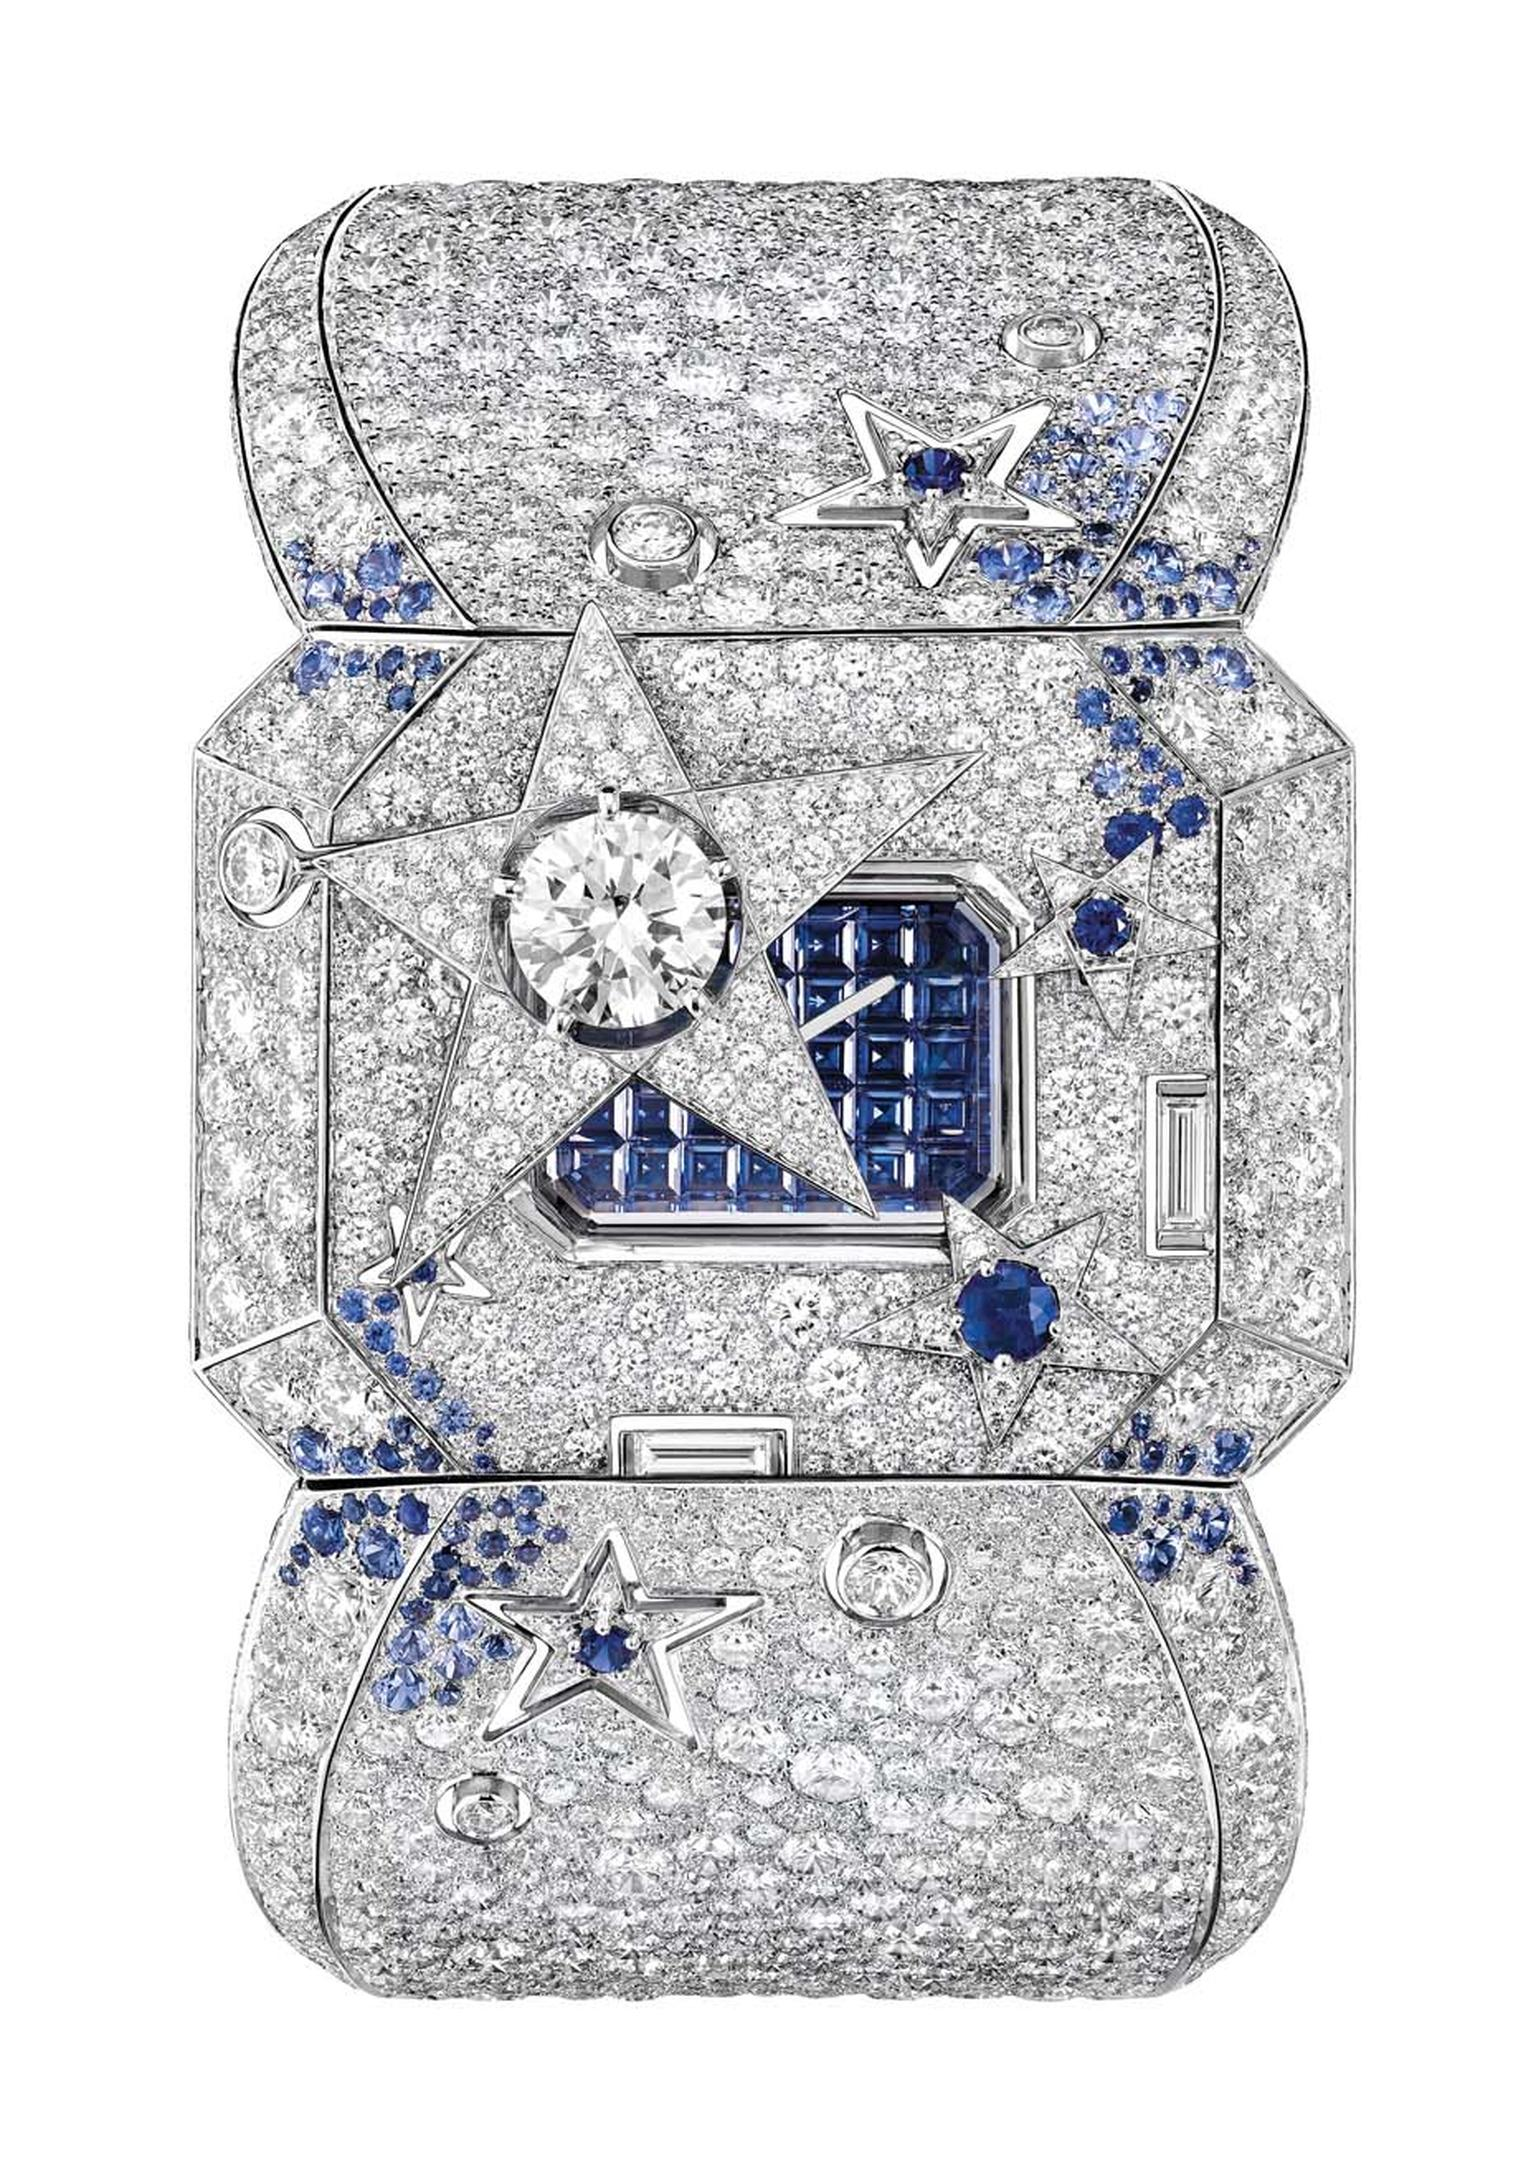 Chanel Comète Secret watch uses a comet with a large 1.00 carat diamond in its centre to shield the dial. By pushing one of the smaller stars, the comet moves to one side to reveal the secret baguette-cut emeralds on the dial.